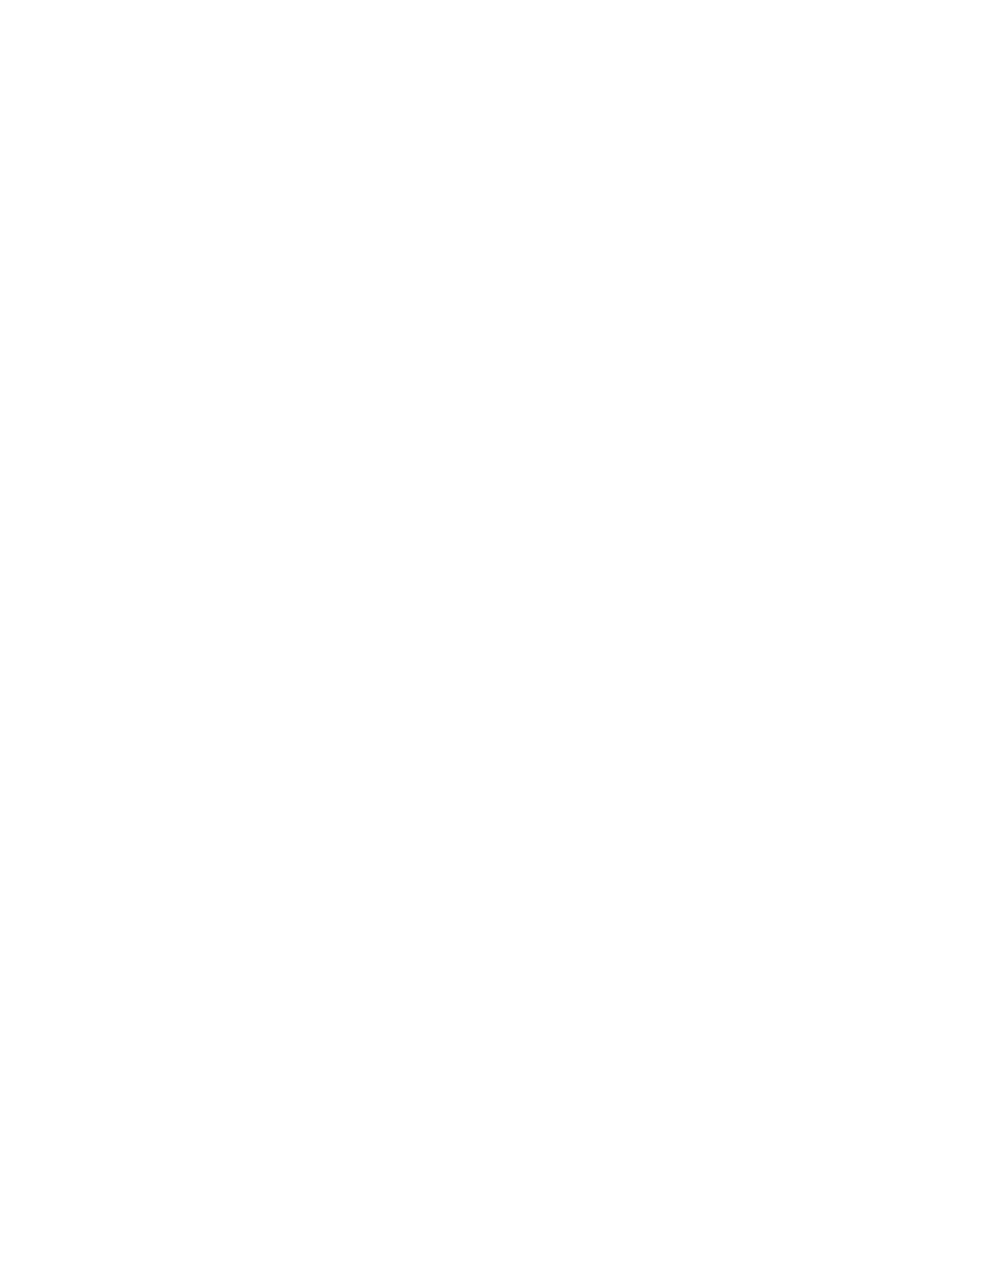 Welcome to Bluefish-Just another WordPress site